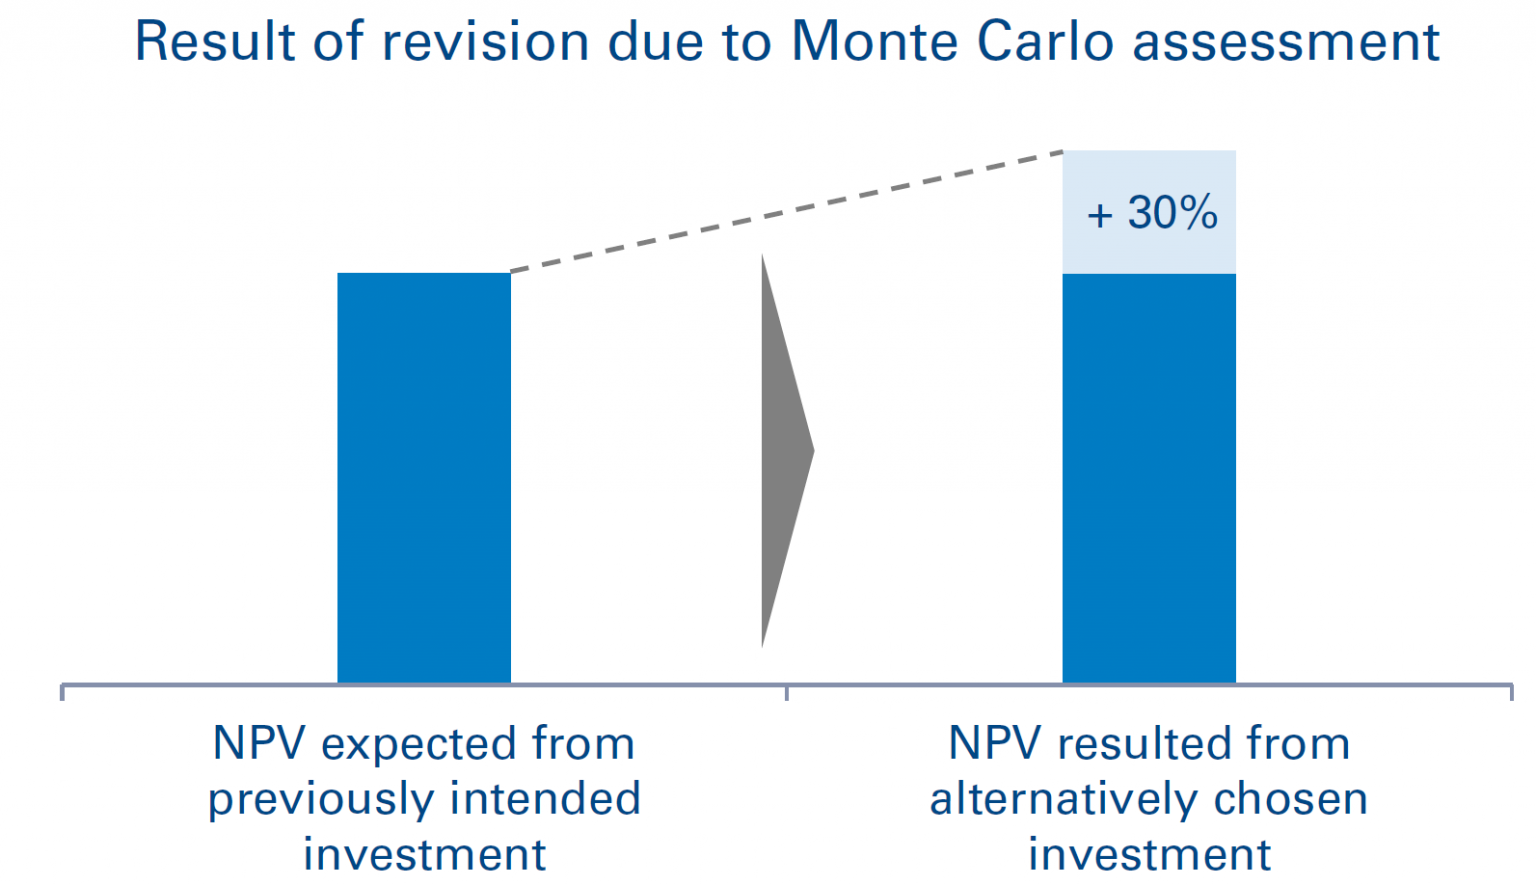 Using the presented approach, an additional 30% in NPV could be achieved compared to the previously planned investment